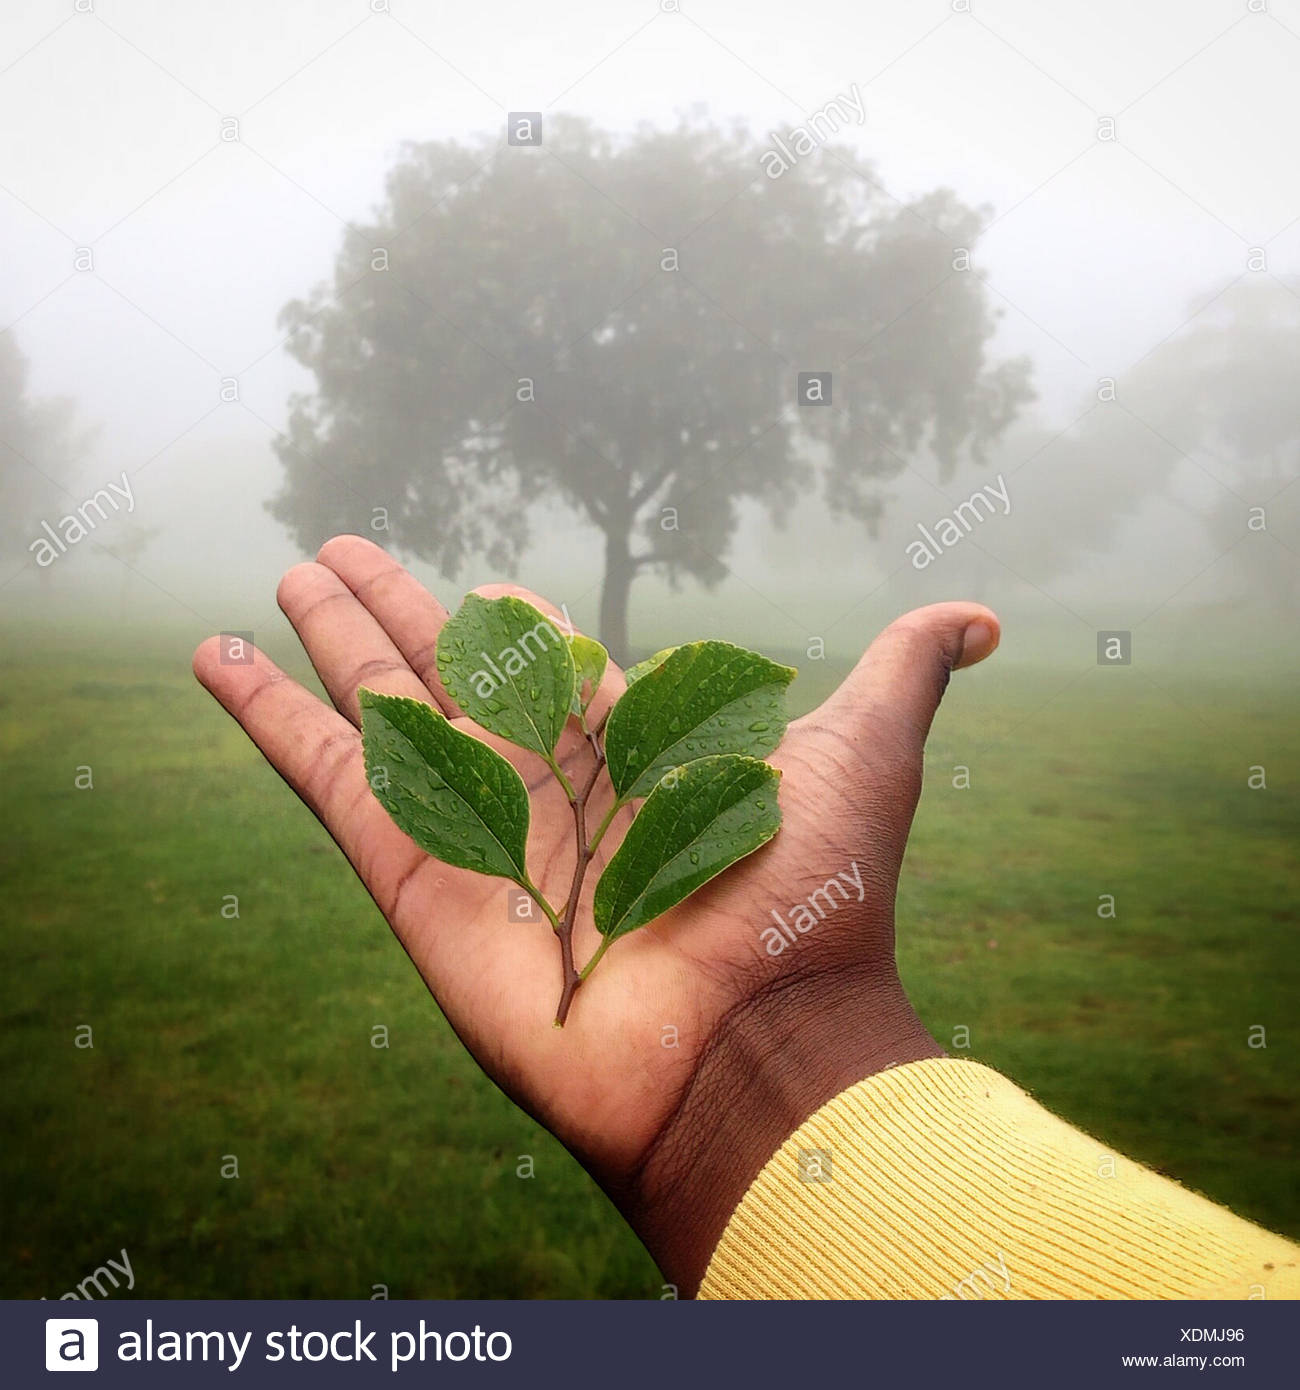 Human hand holding plant with tree in background, Gauteng, Johannesburg, South Africa Stock Photo